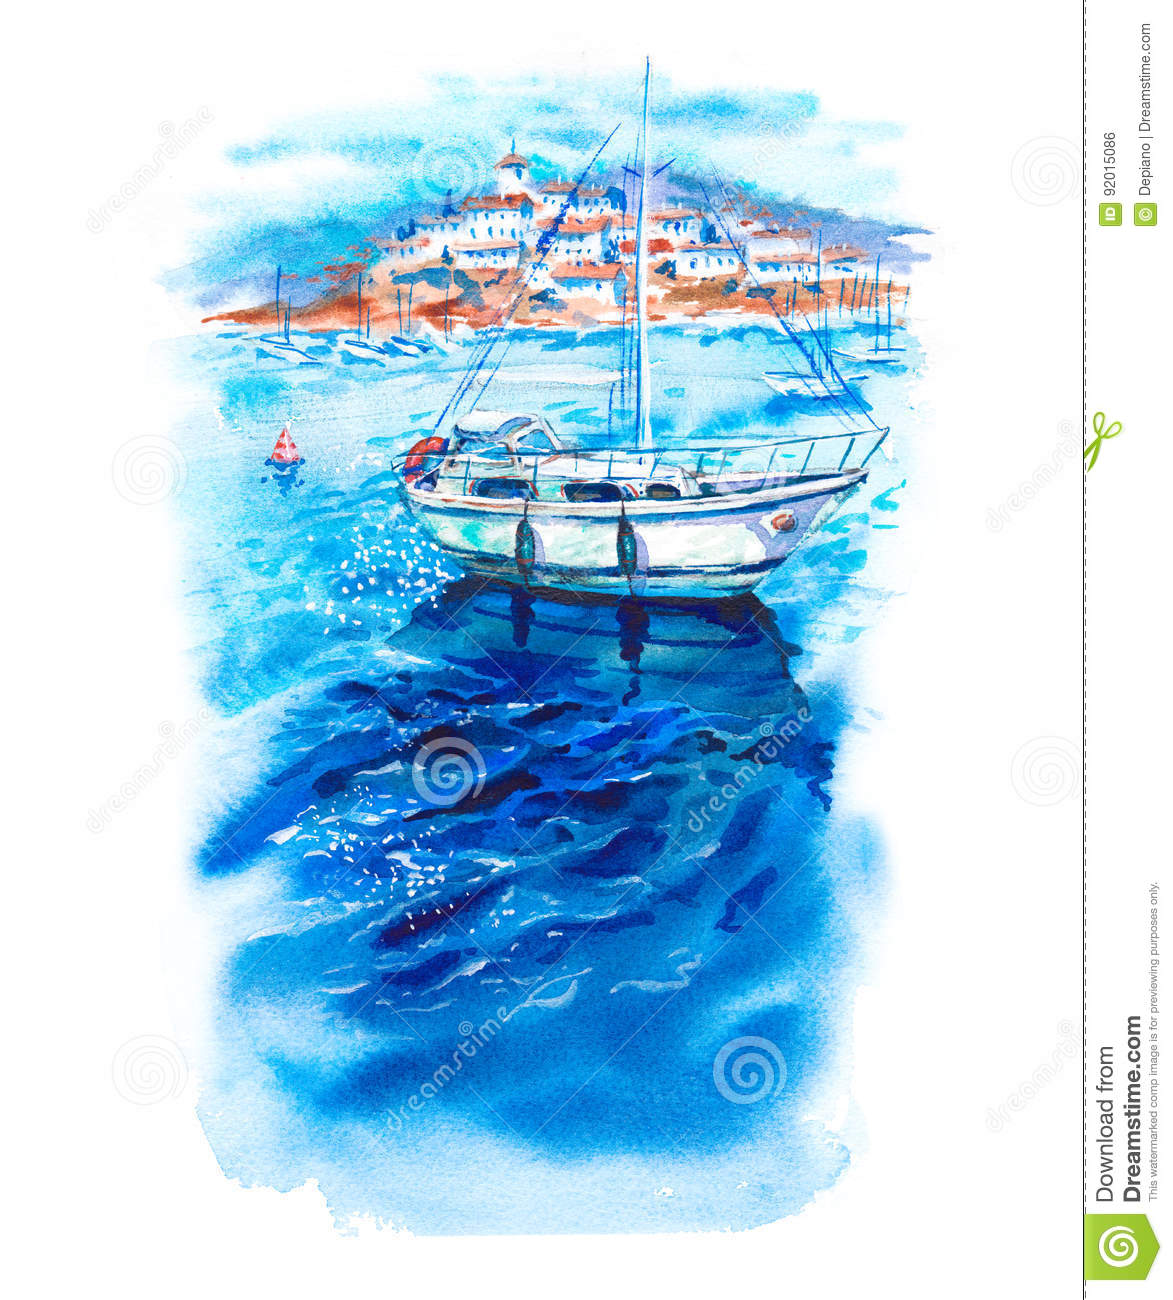 ac953ef2c Summer sun watercolor landscape with azure sea, boats, yachts, blue sky and  white coastal city, bright marine hand-drawn illustration isolated on white  ...